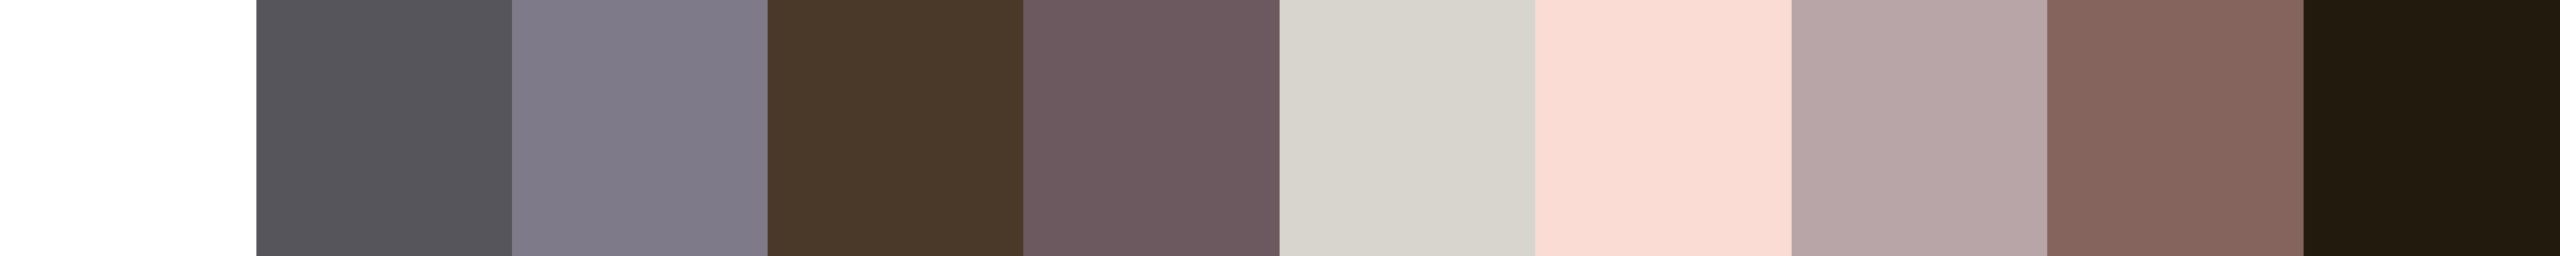 391 Arenavia Color Palette